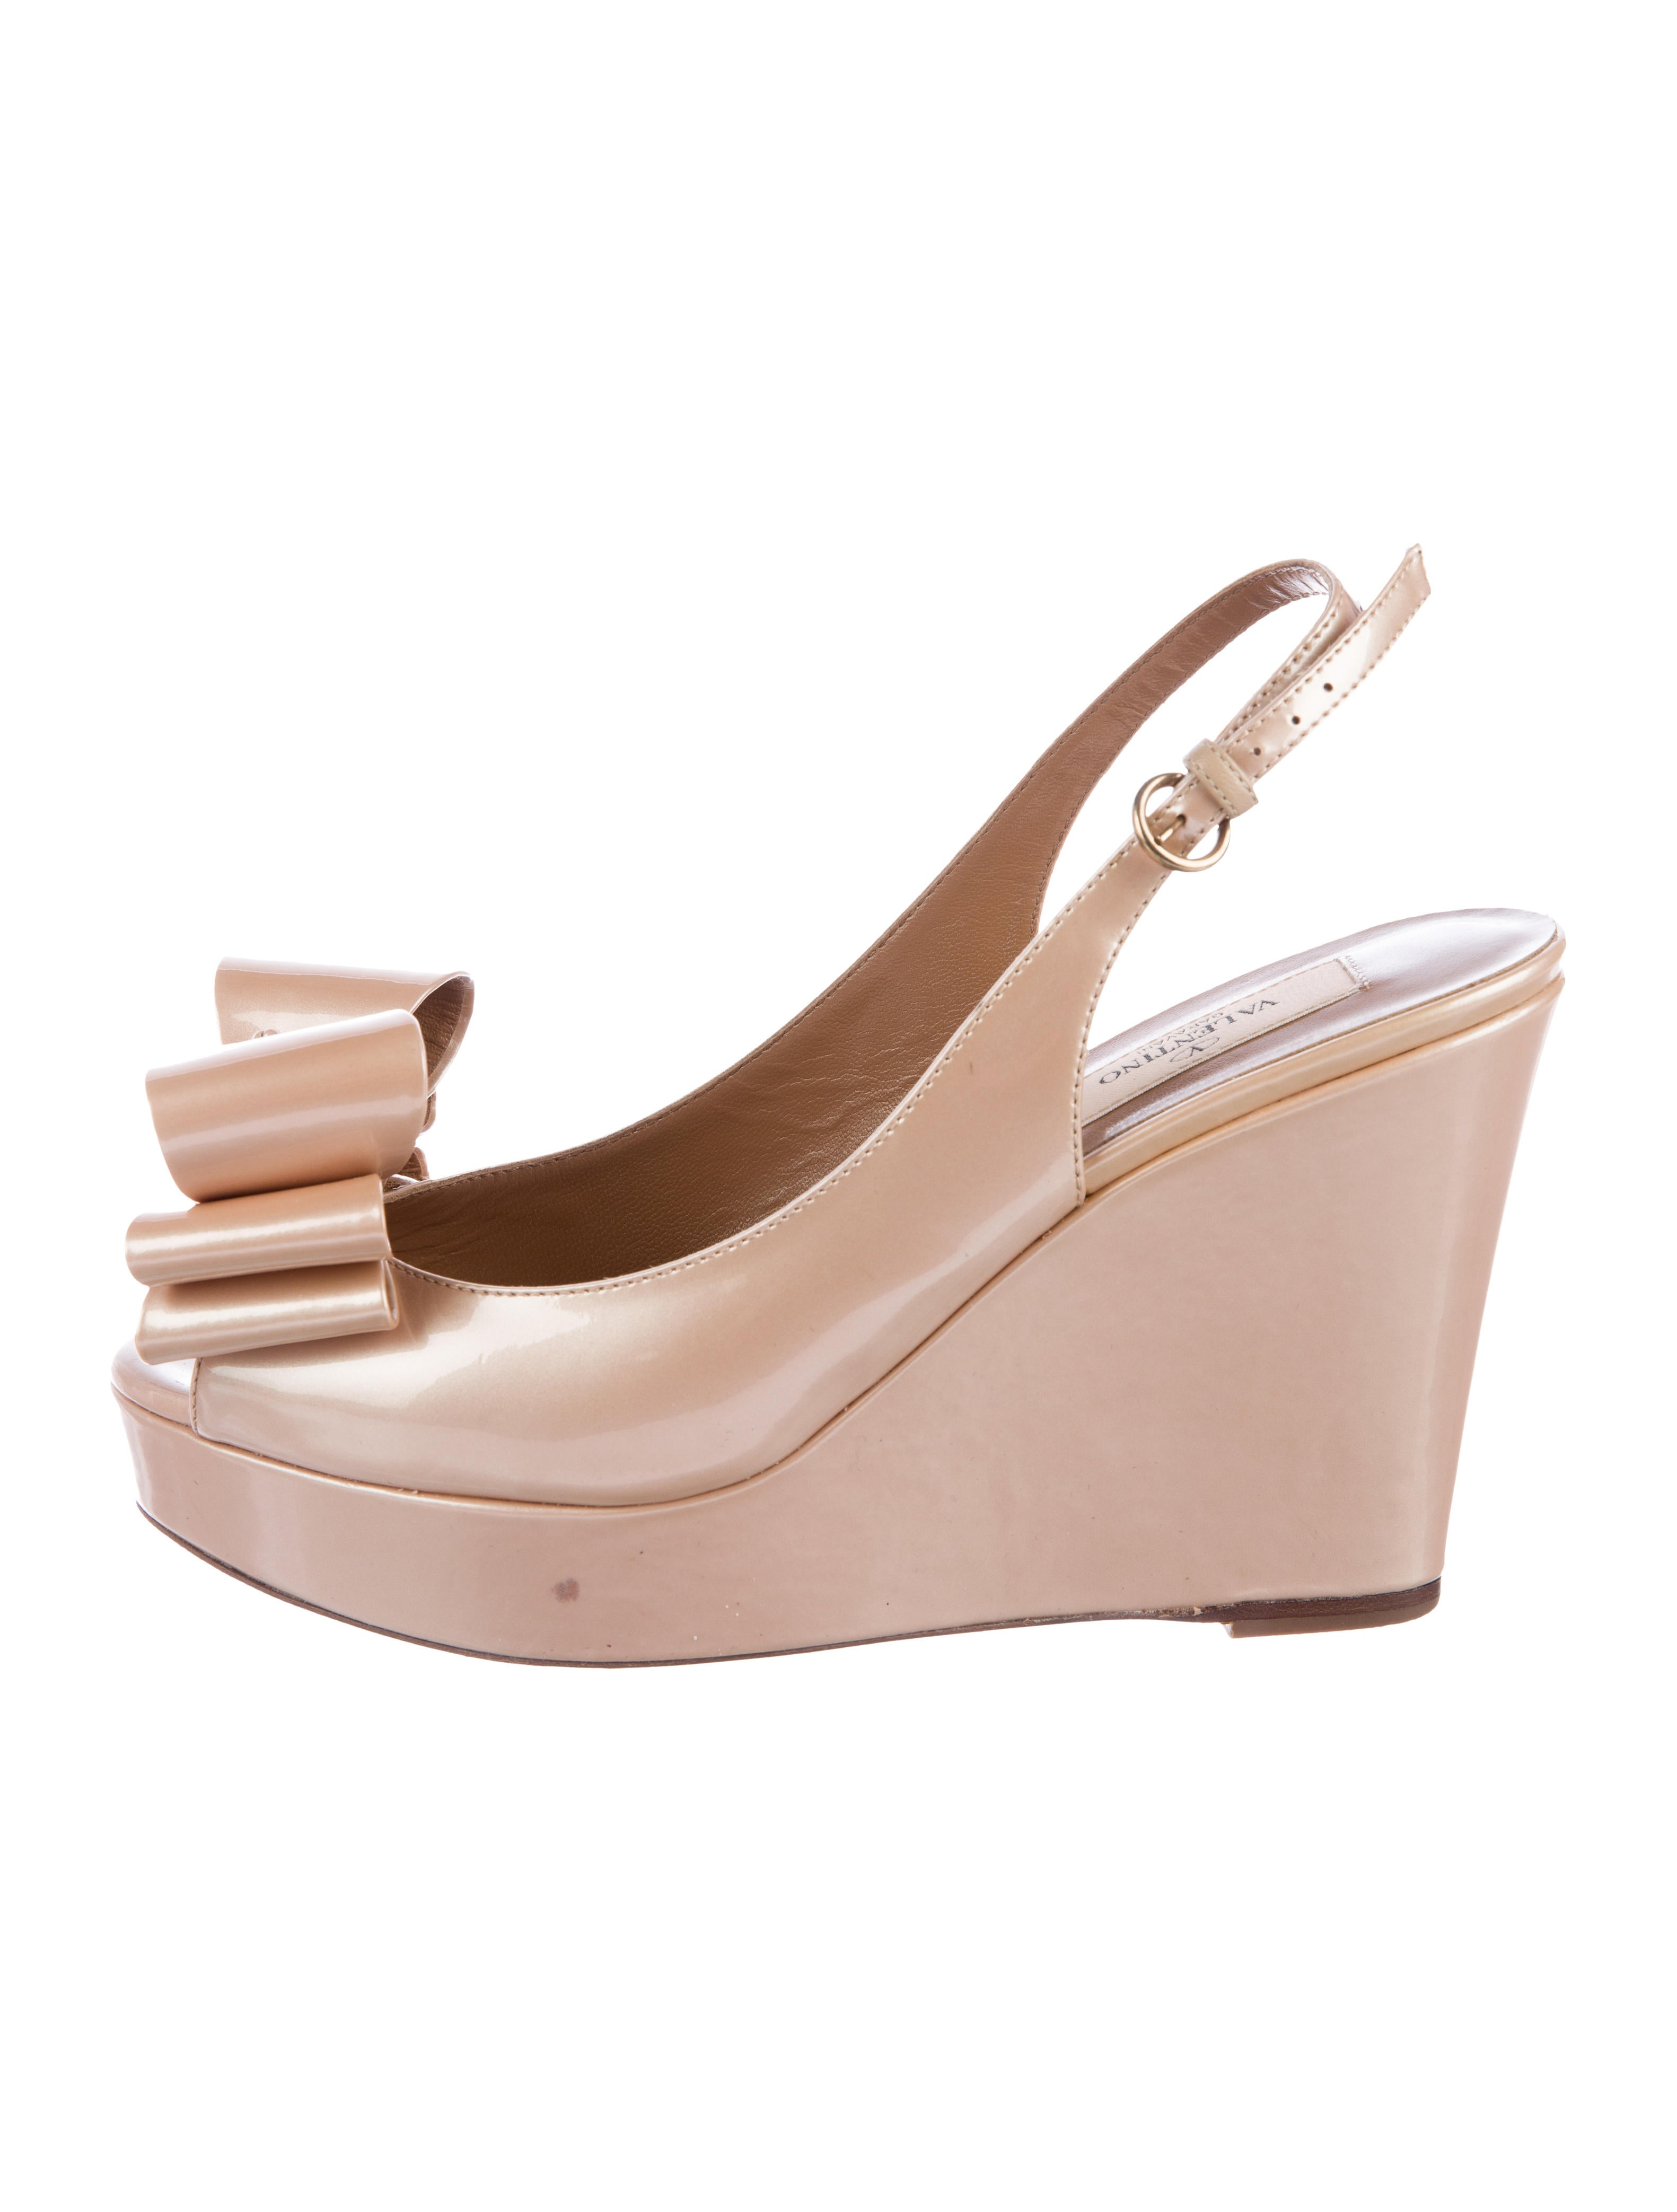 browse cheap price free shipping best place Valentino Patent Leather Slingback Wedges clearance official site caPkso2